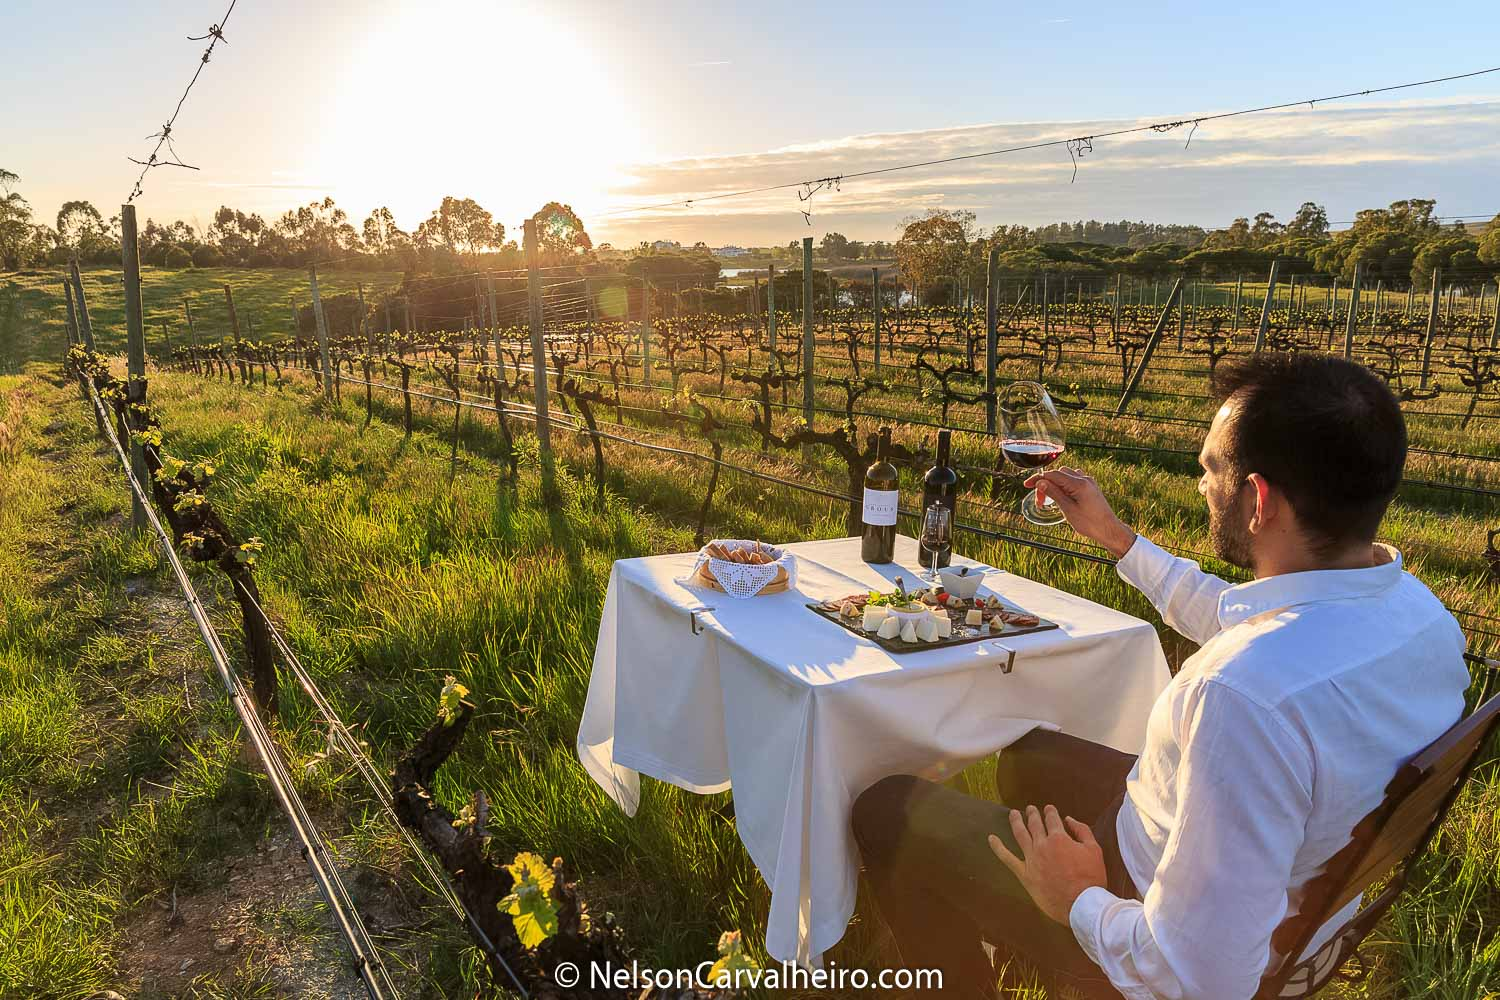 How to Choose the Right WineTasting Tour